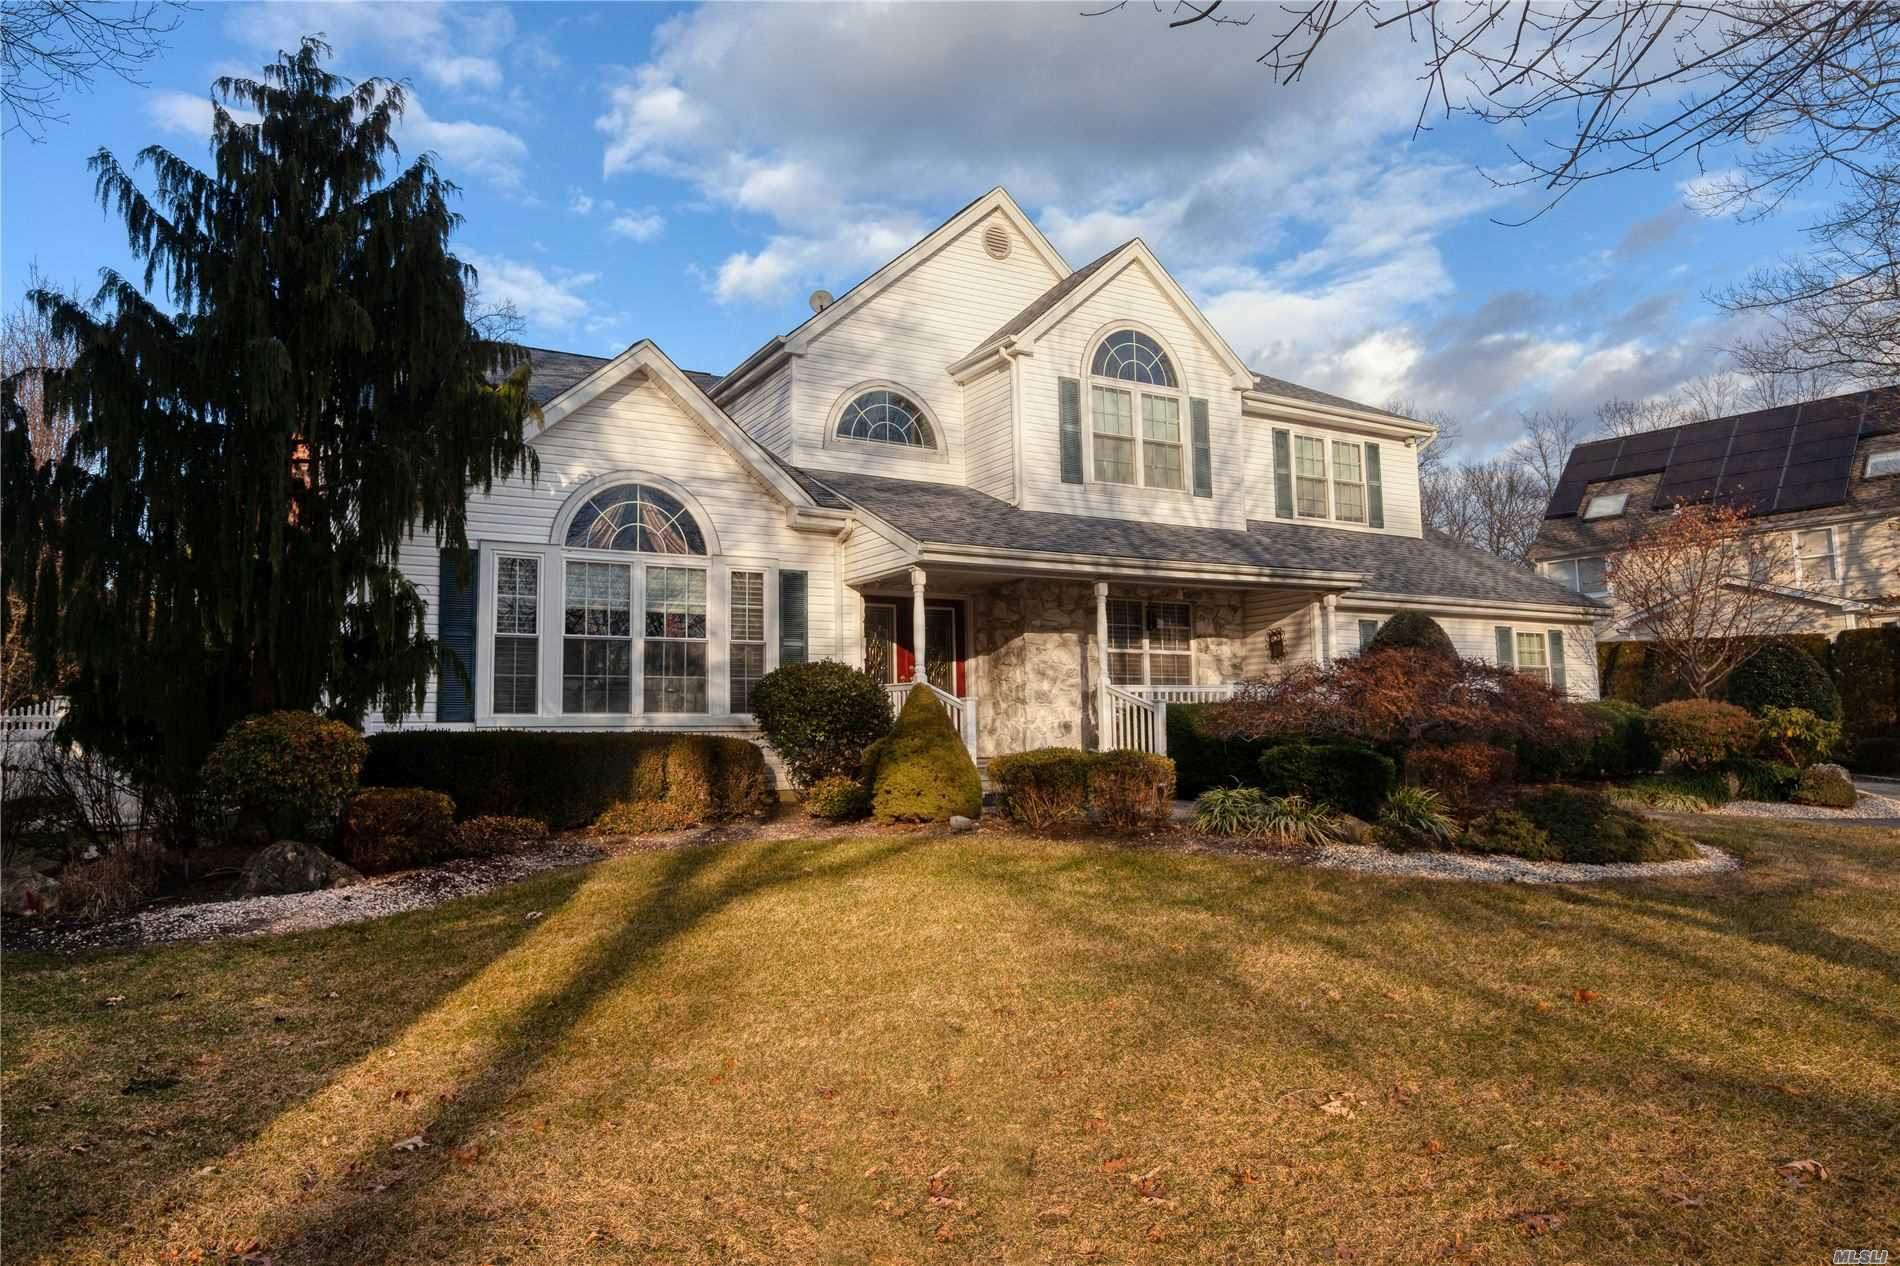 Property for sale at 4 Weeping Cherry Ln, Commack,  New York 11725